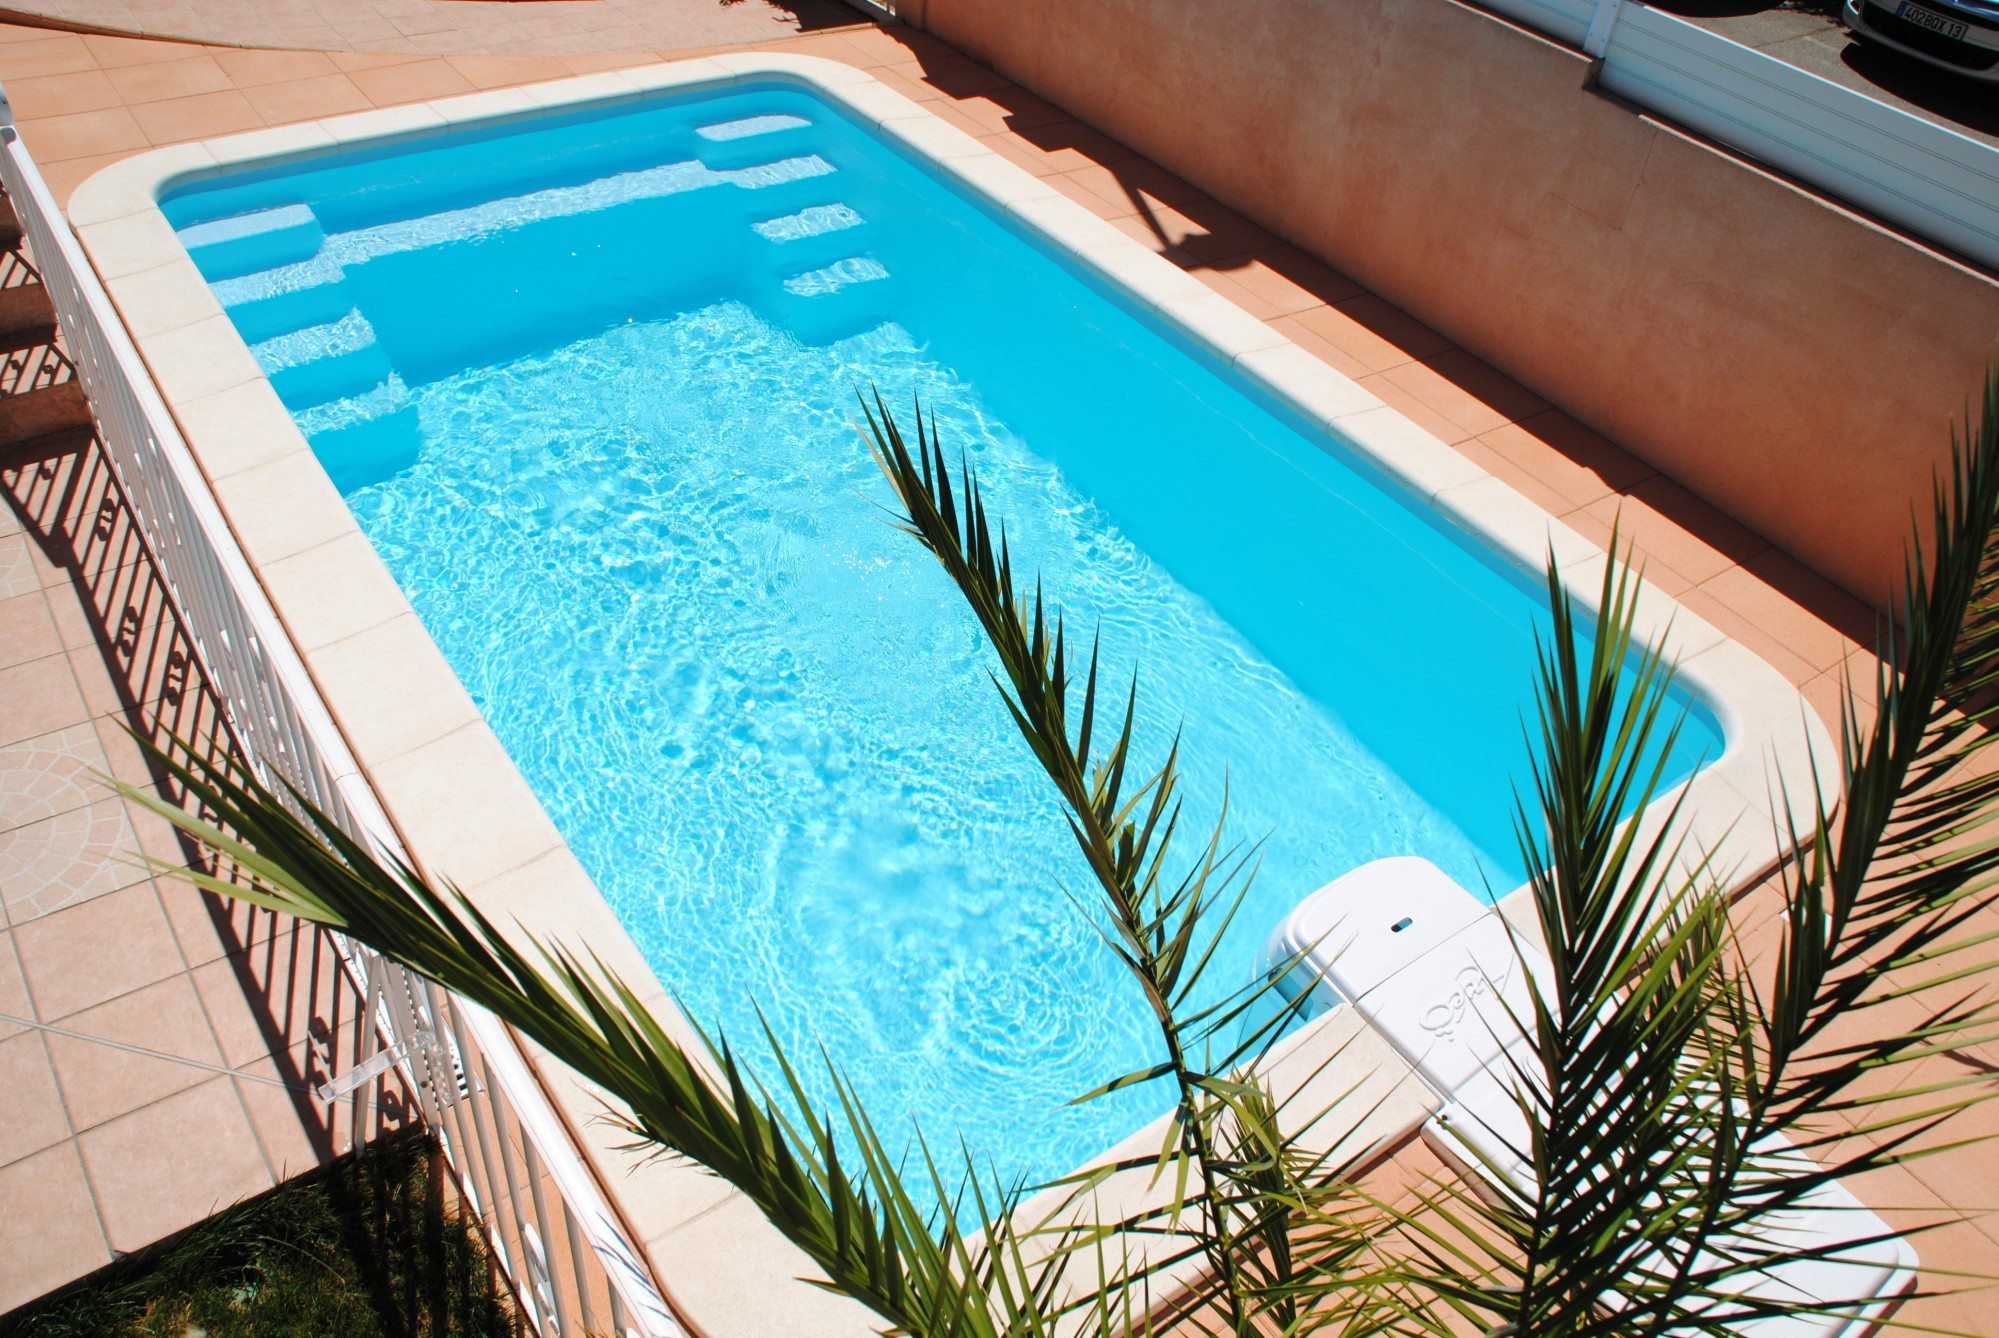 Piscine enterr e coque 6x3 pr te plonger prix for Piscine enterree prix